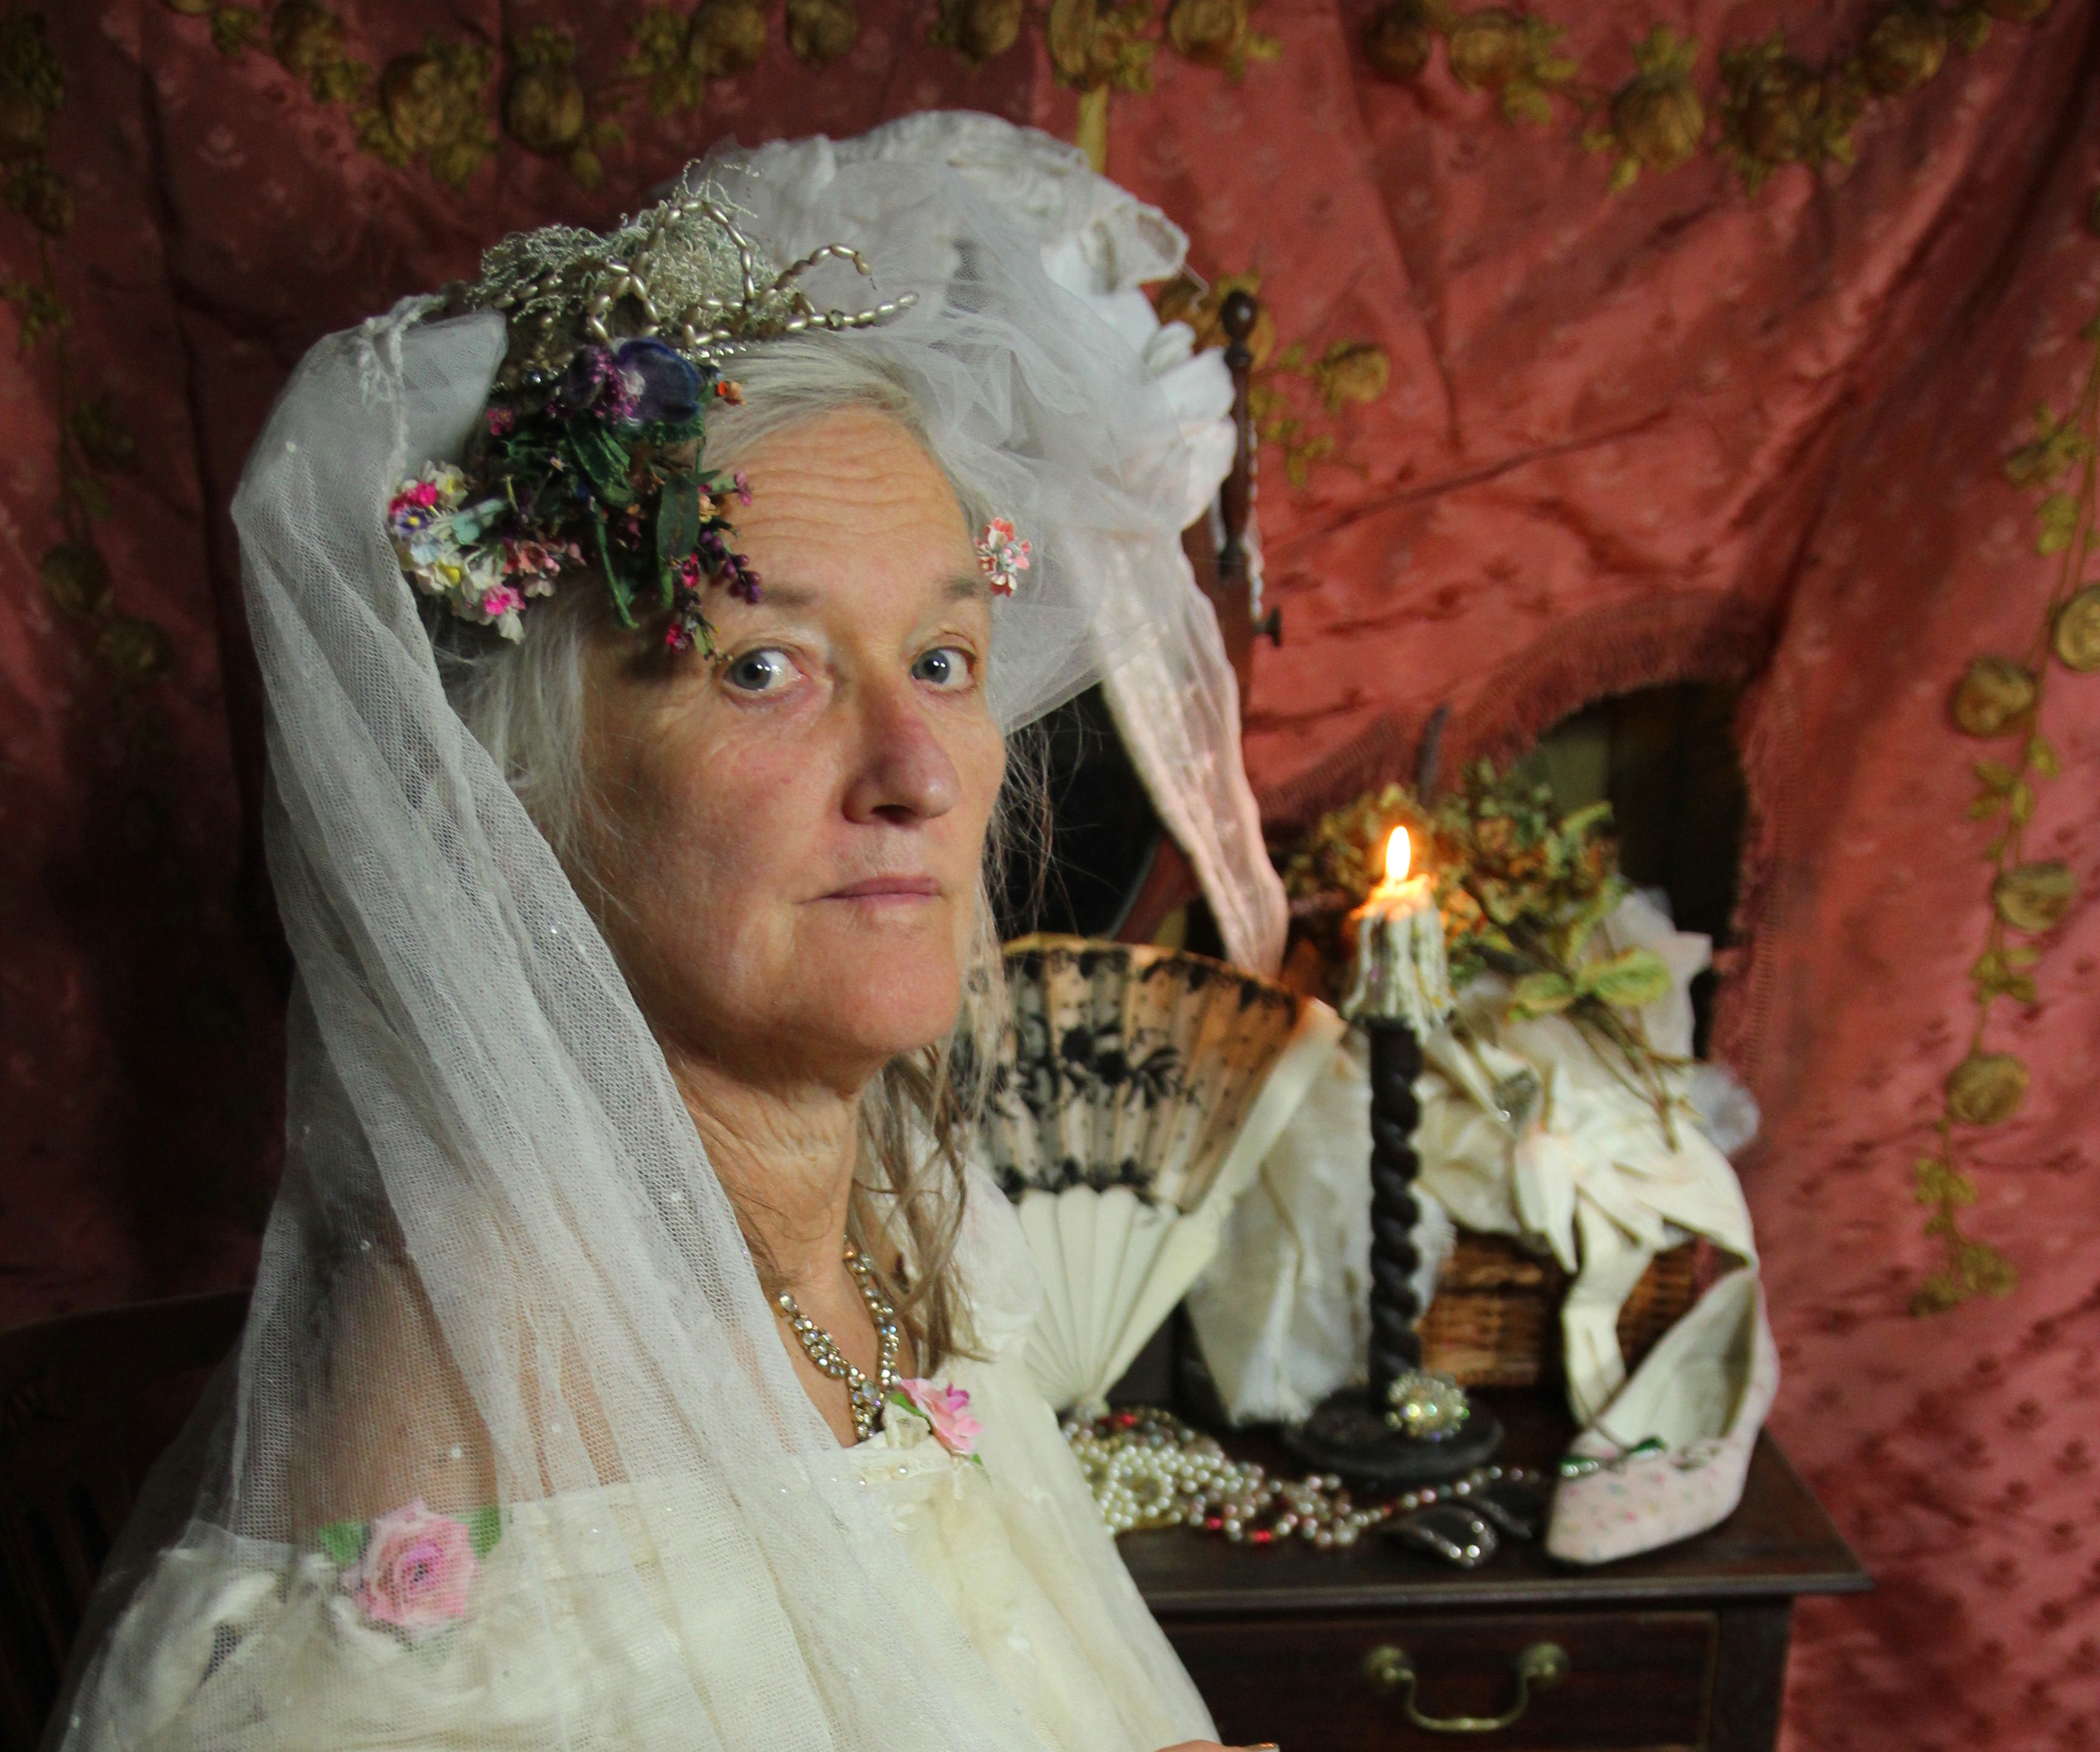 Miss Haversham - the Perpetual Bride From Charles Dickens's Great Expectations